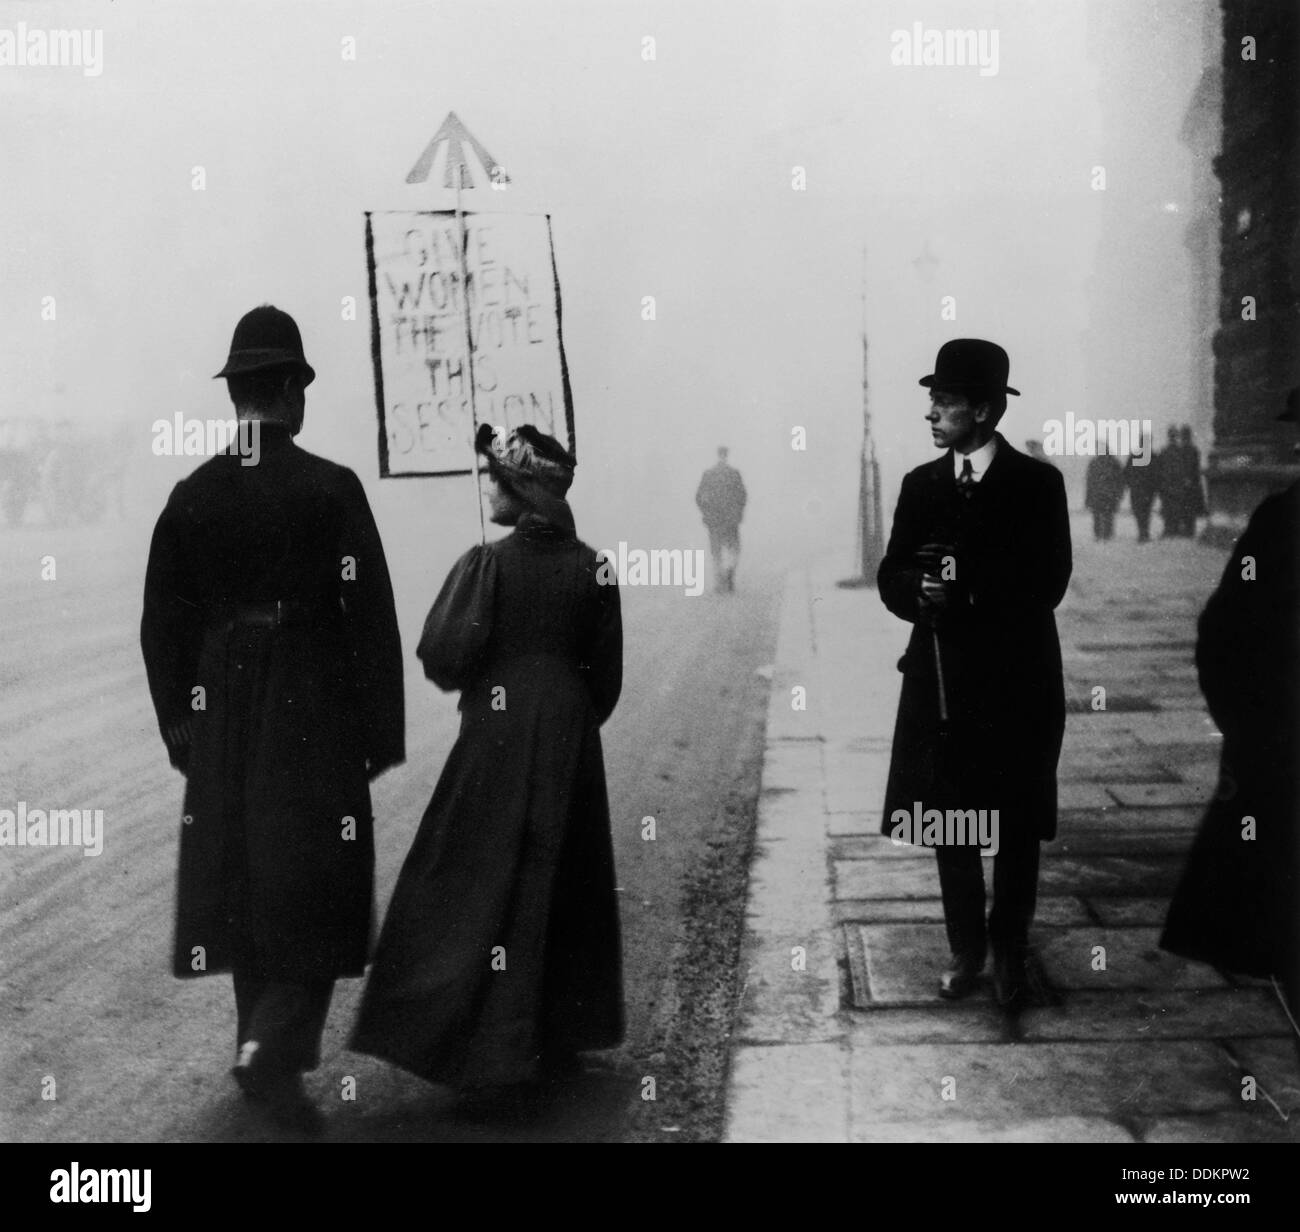 A suffragette demonstrating in Whitehall, London, c1908. - Stock Image